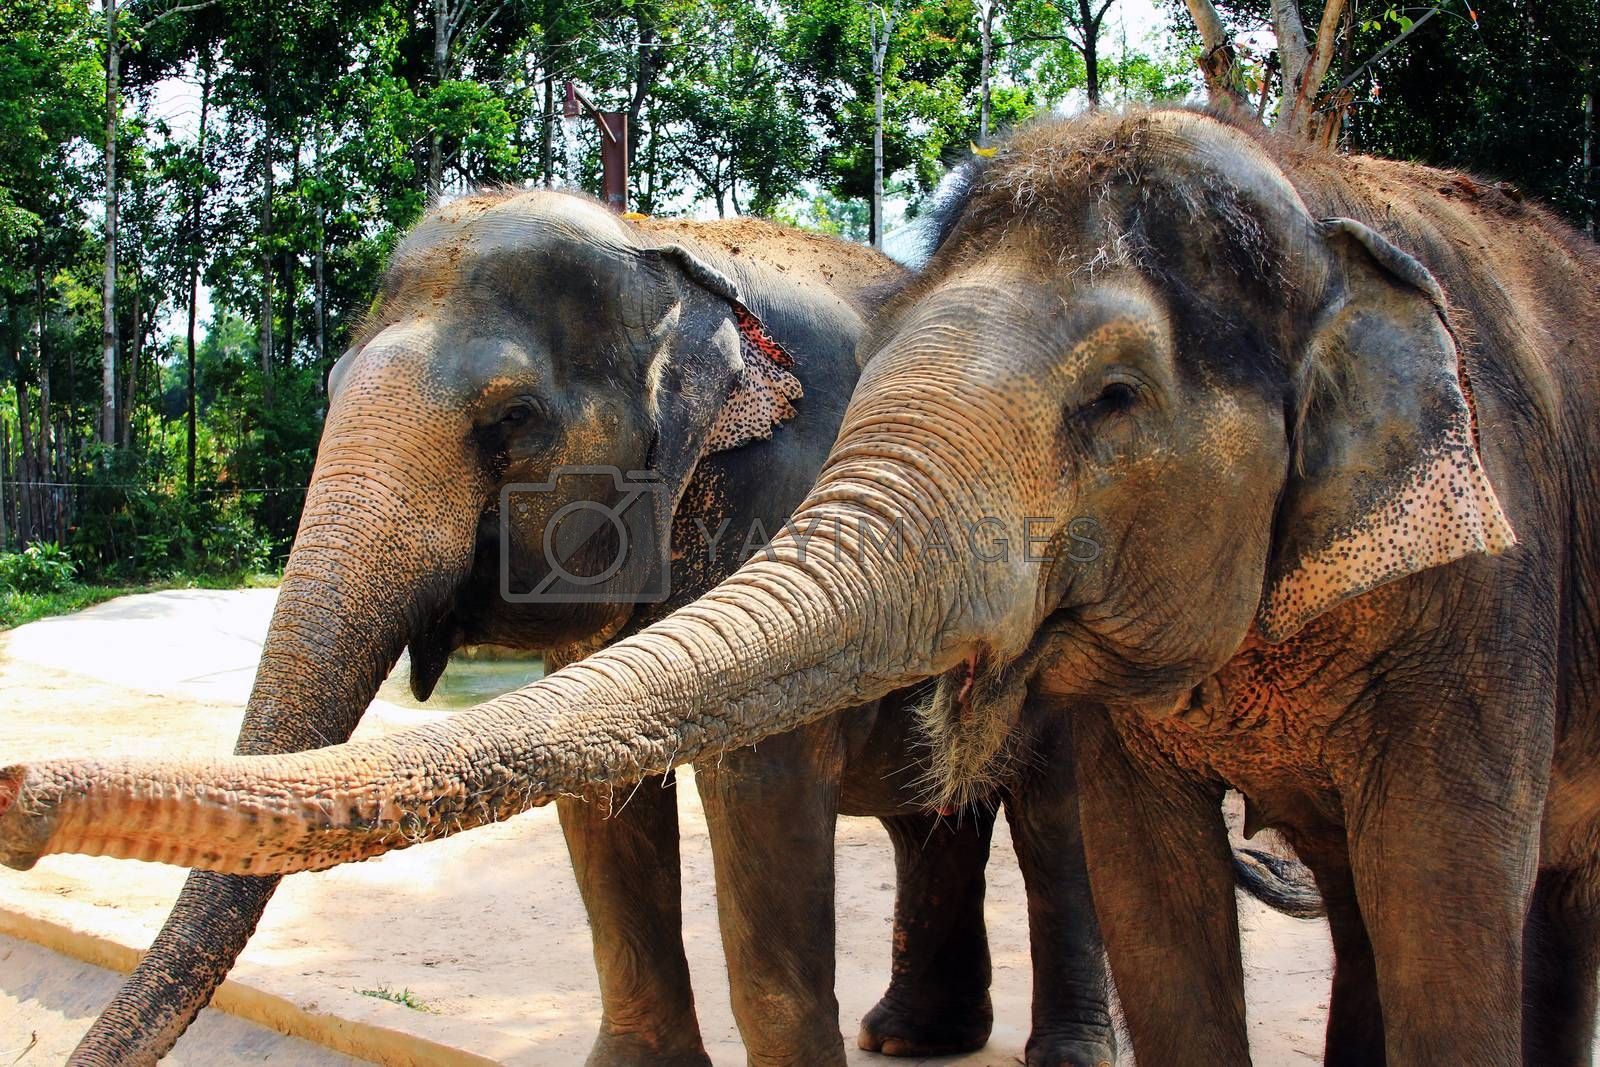 Close-up view of two Asiatic elephants, with muddy skin, standing very close to each other, touching their trunks on each other's faces, including inside the mouth. They are in a rural tropical setting, in southeast Asia.